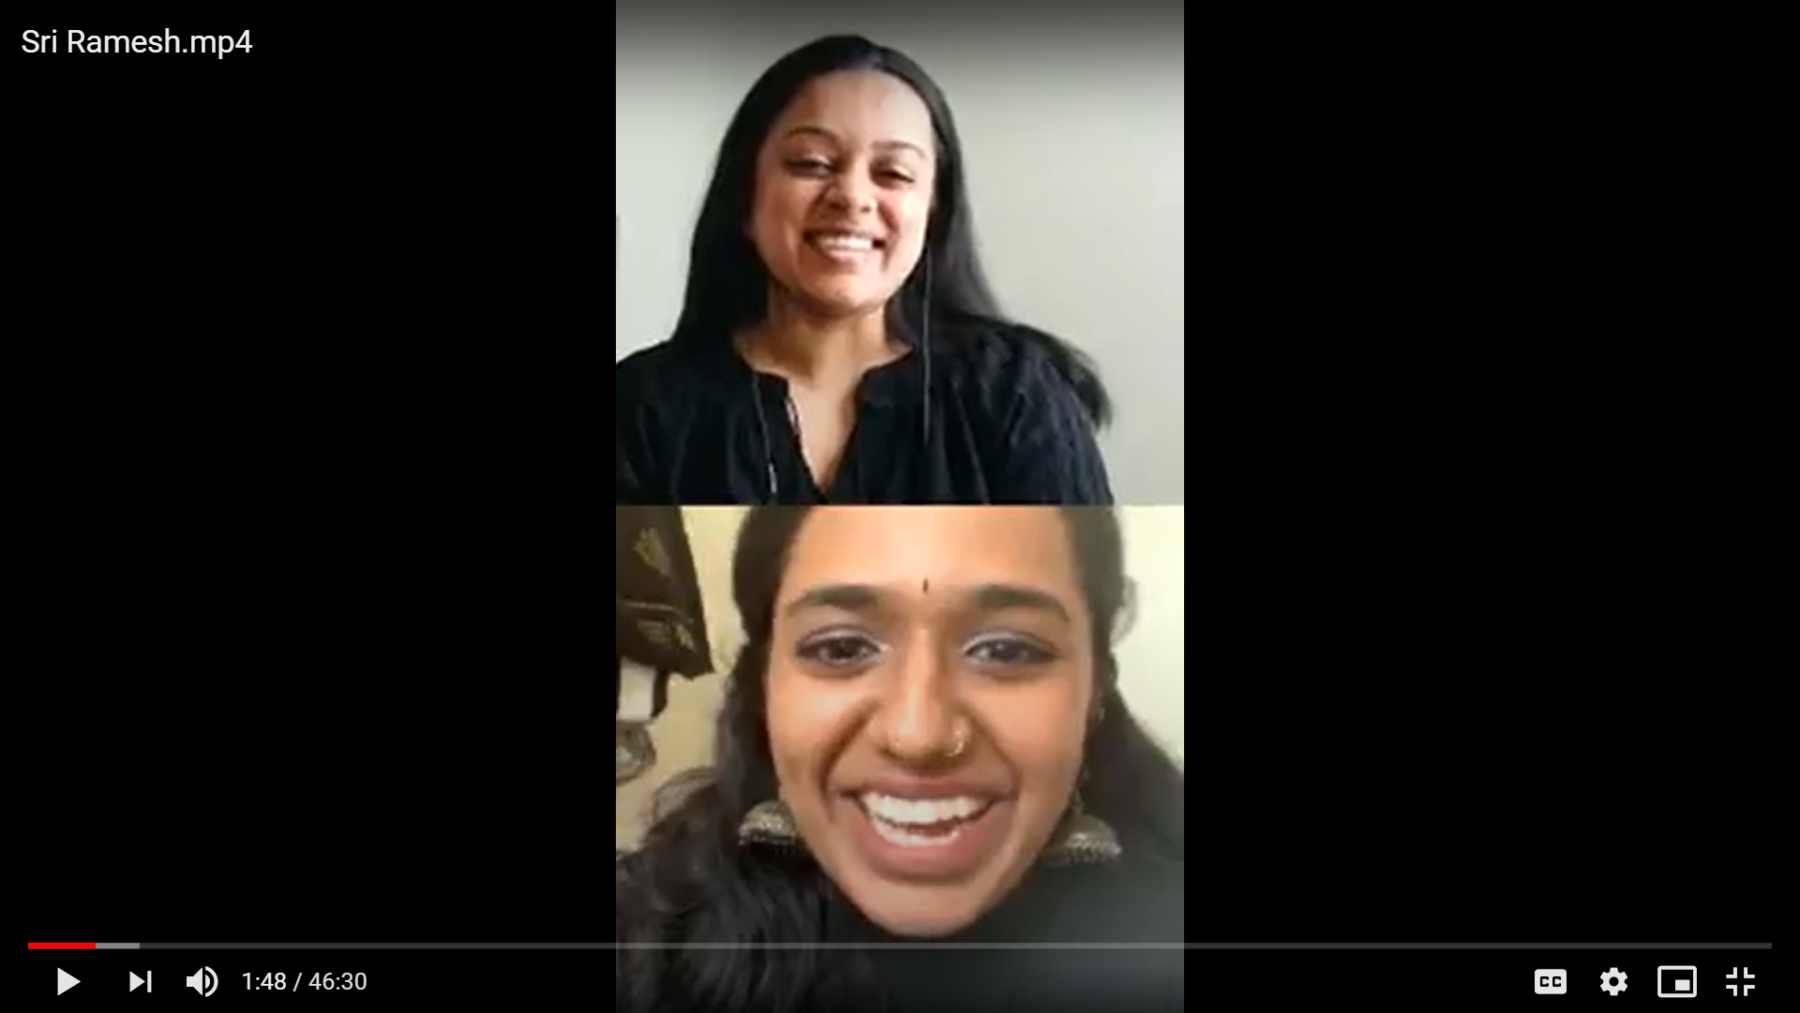 A screenshot from Sri's Instagram Live discussion.